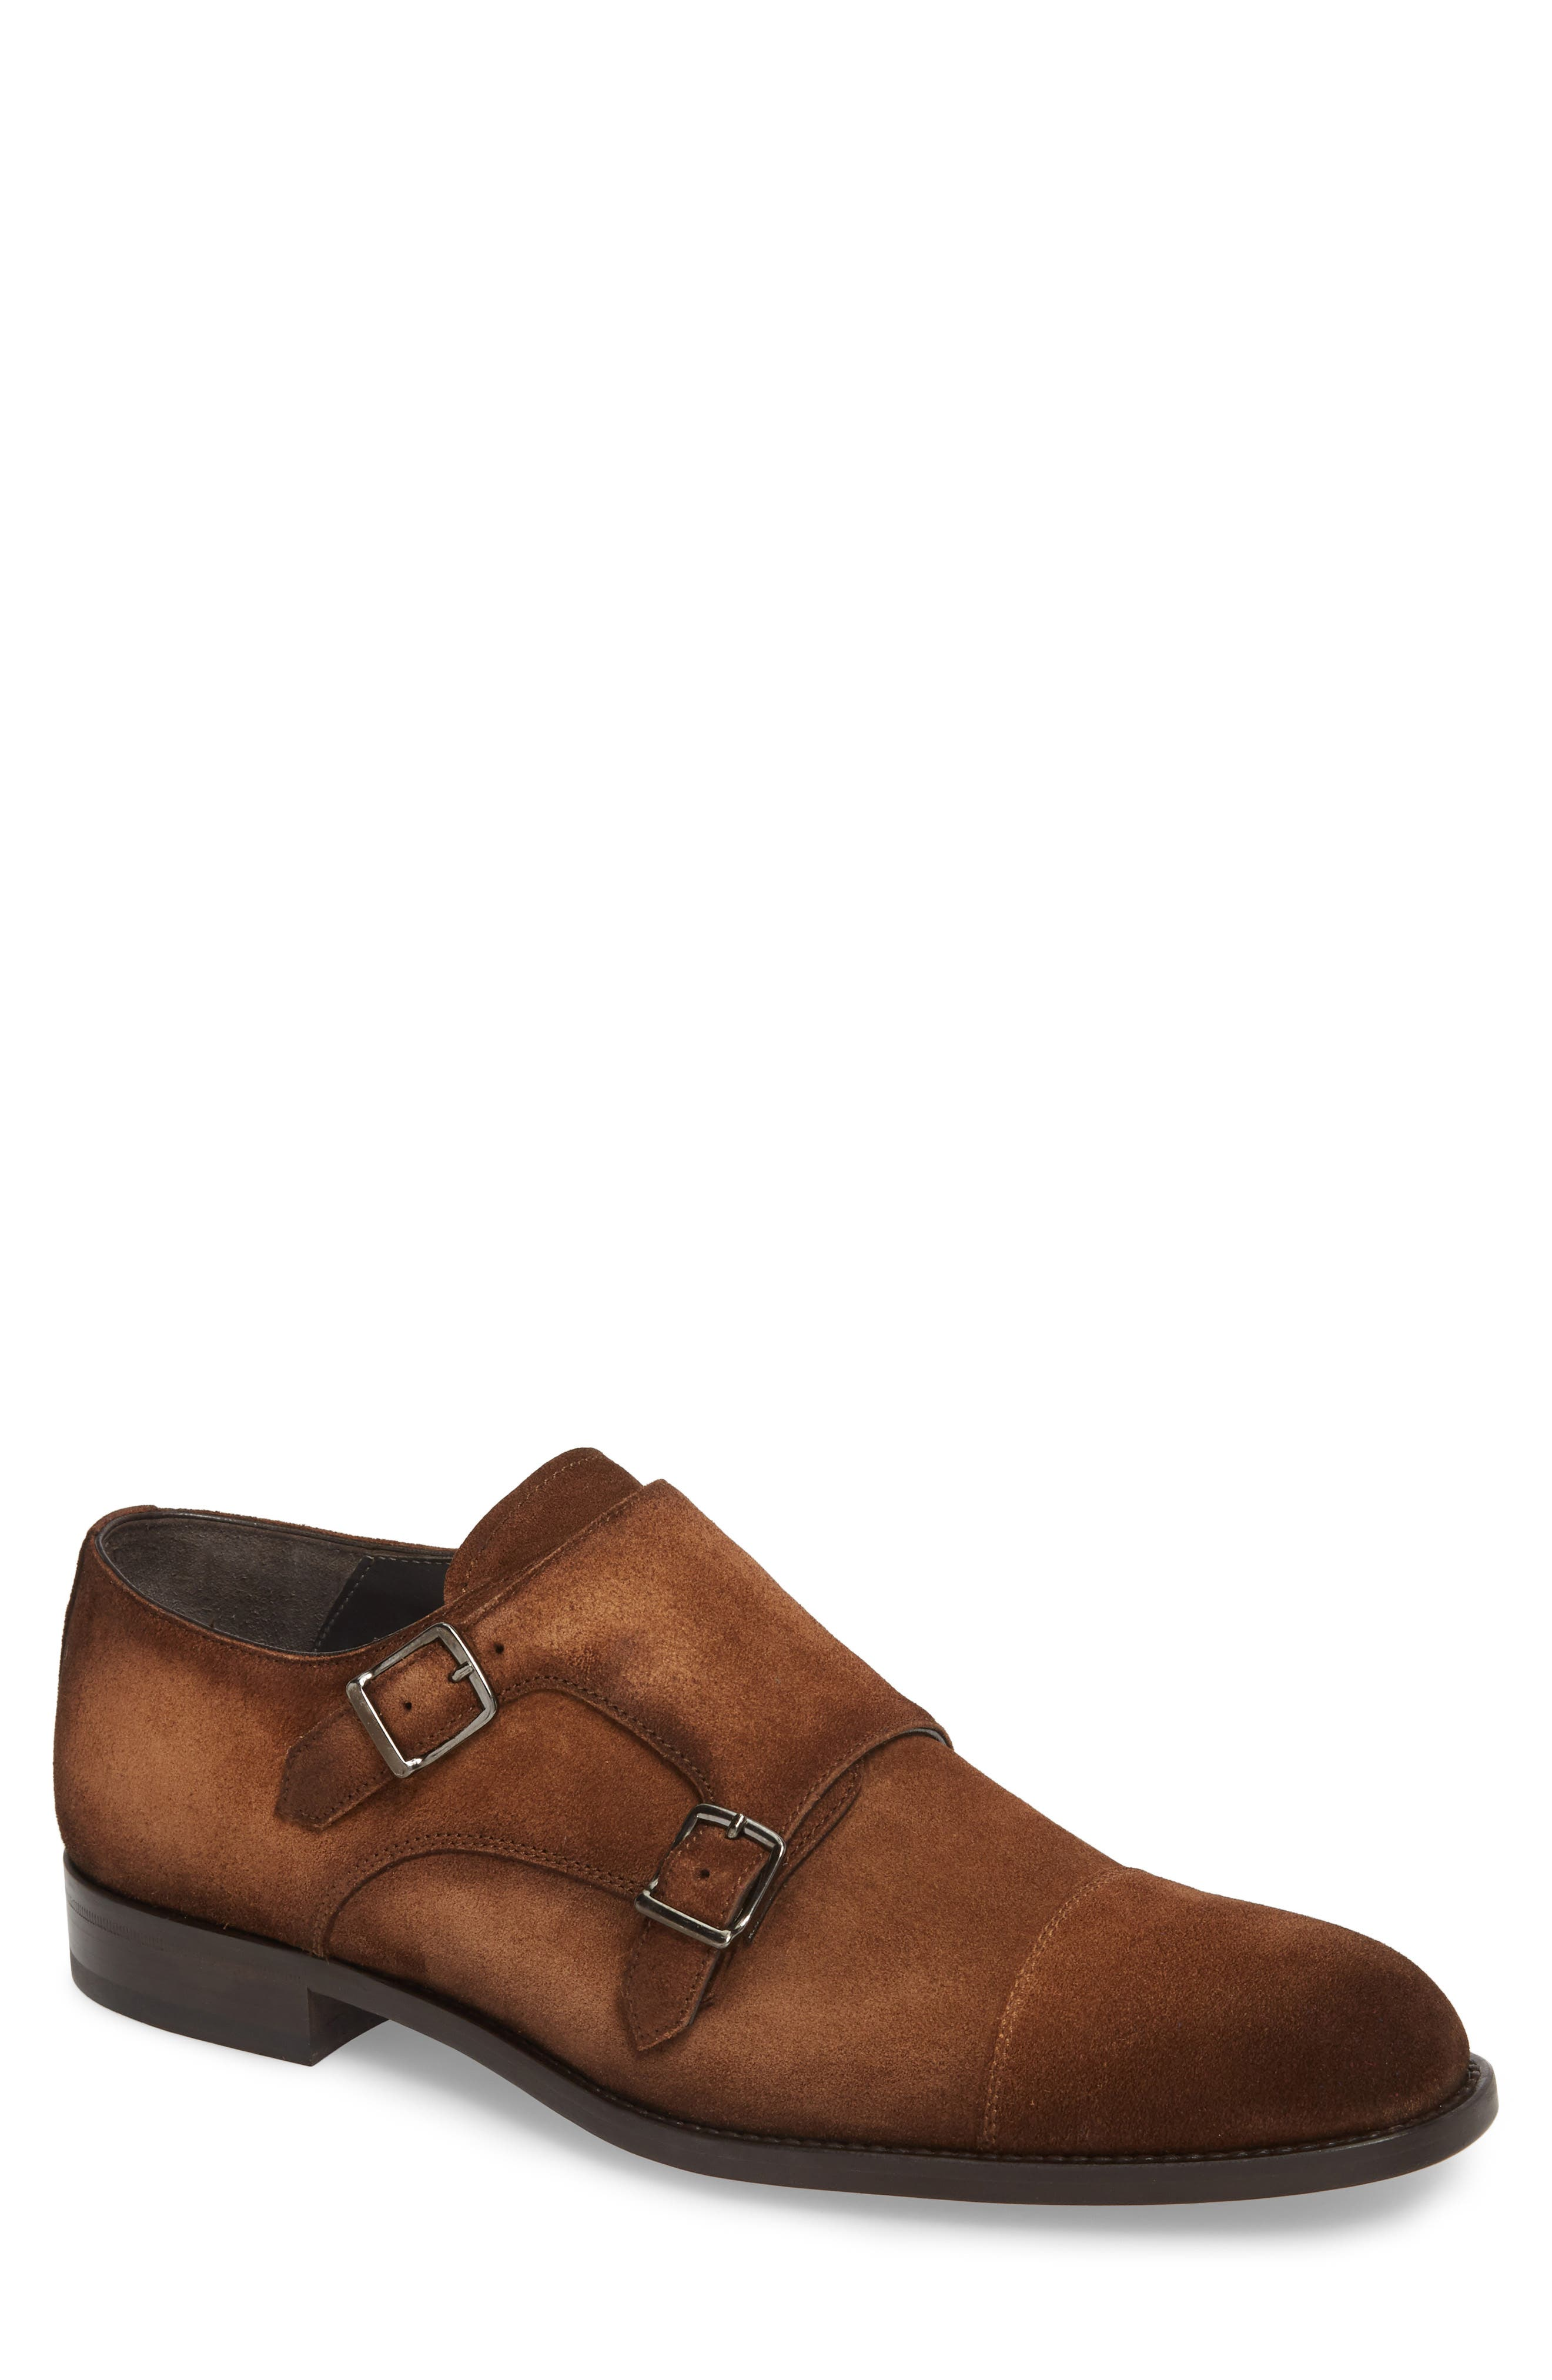 Quentin Cap Toe Monk Shoe,                         Main,                         color, BROWN SUEDE LEATHER